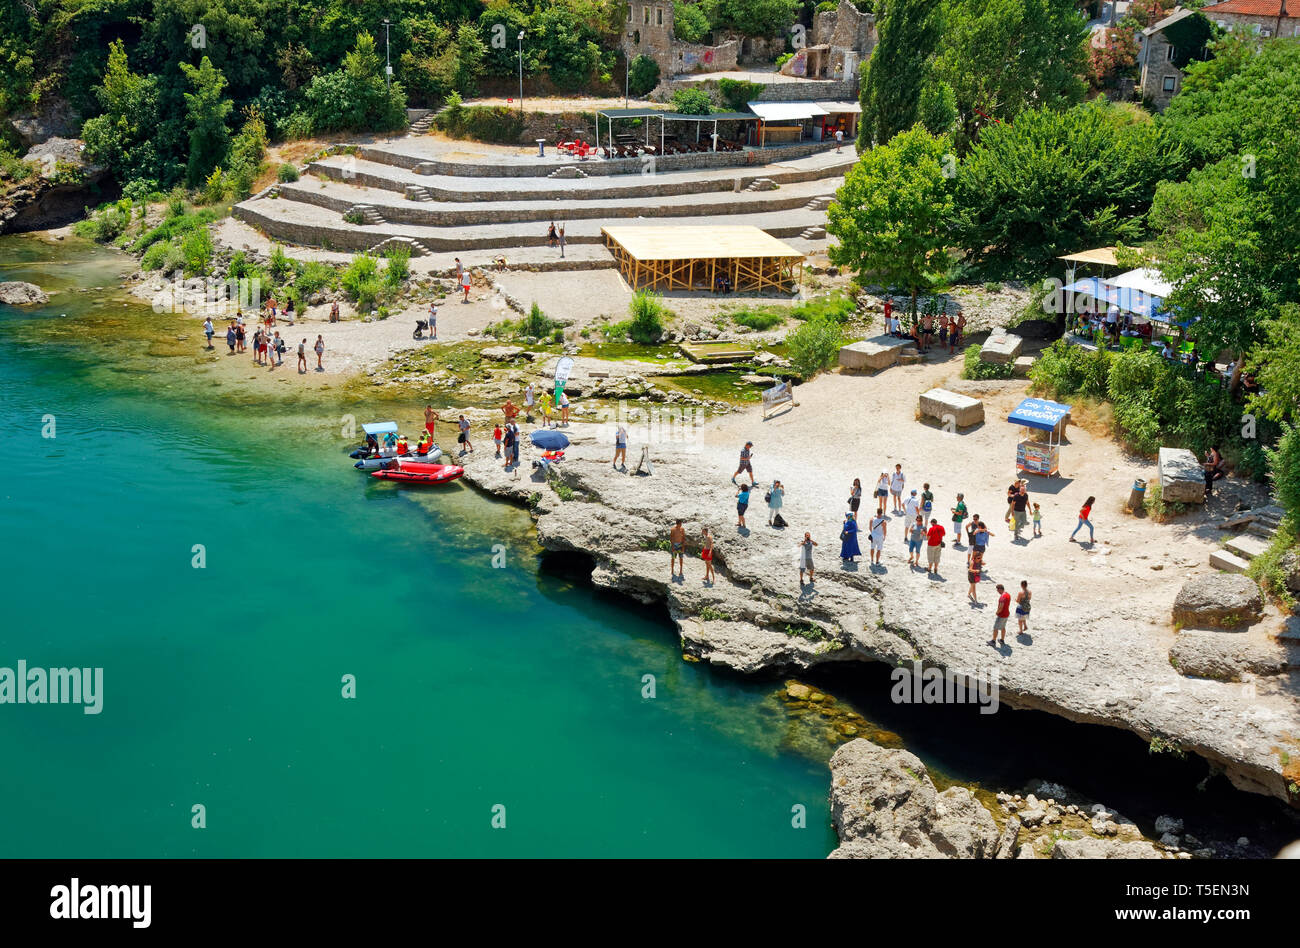 Neretva River overview; people, inflatable dinghies, activity, Mostar; Bosnia Herzegovina; Europe; summer, horizontal - Stock Image